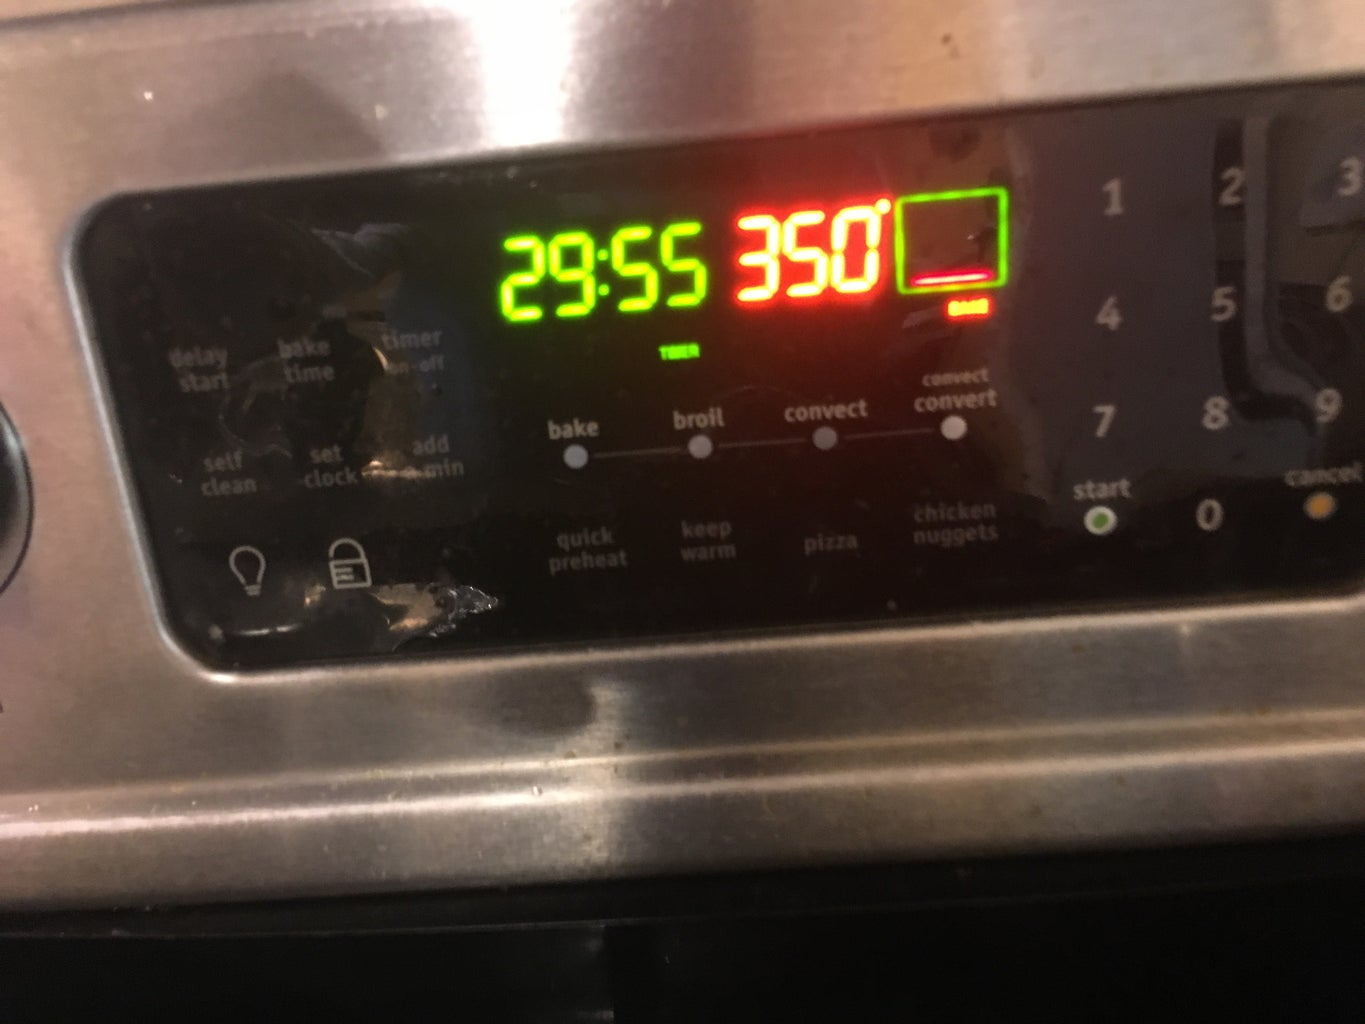 Preheat the Oven to 350